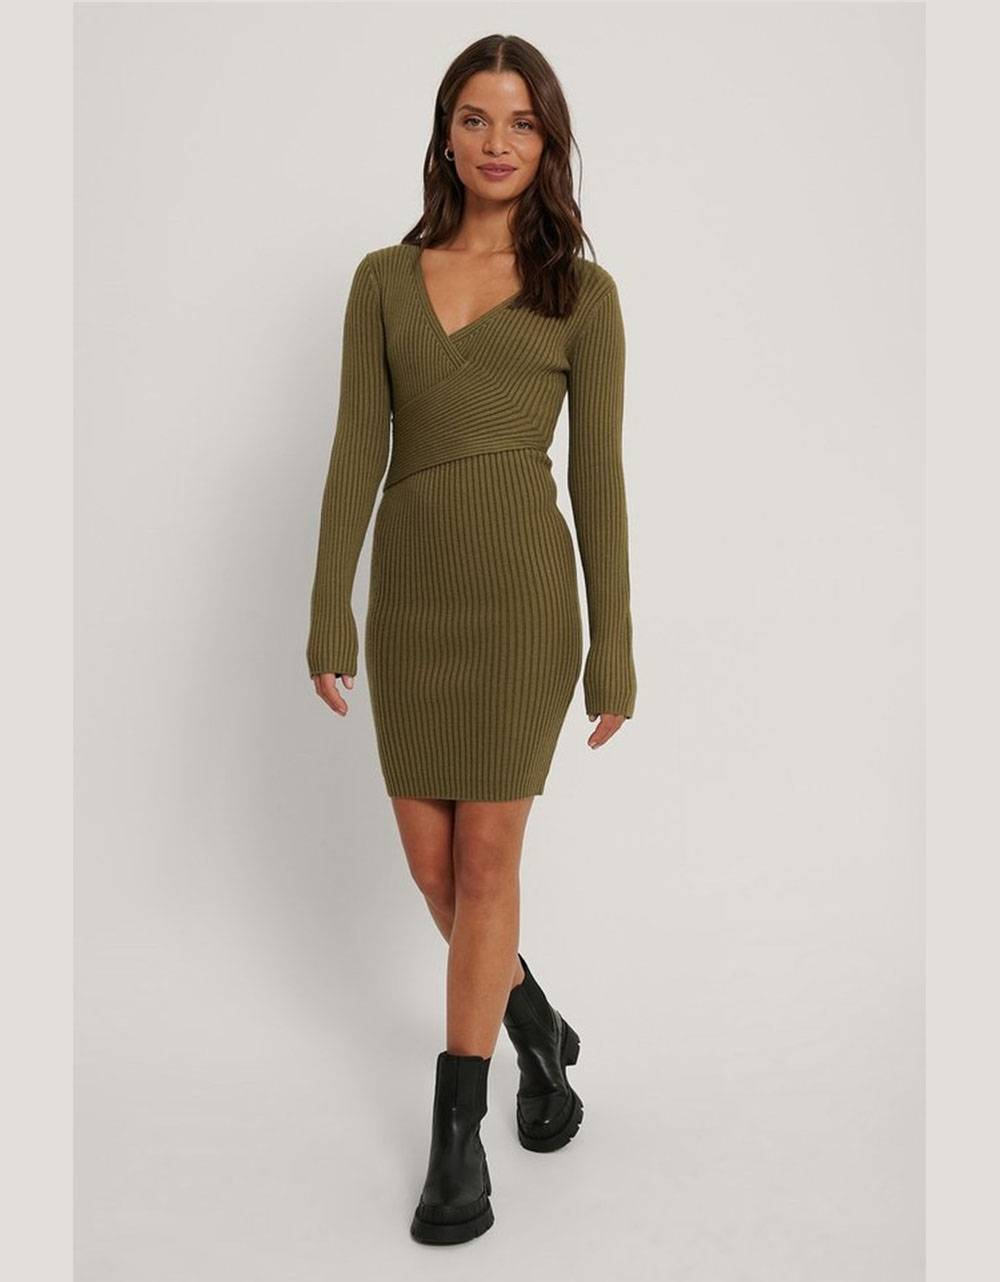 NA-KD ribbed knitted dress - olive green NA-KD Dress 69,00 €